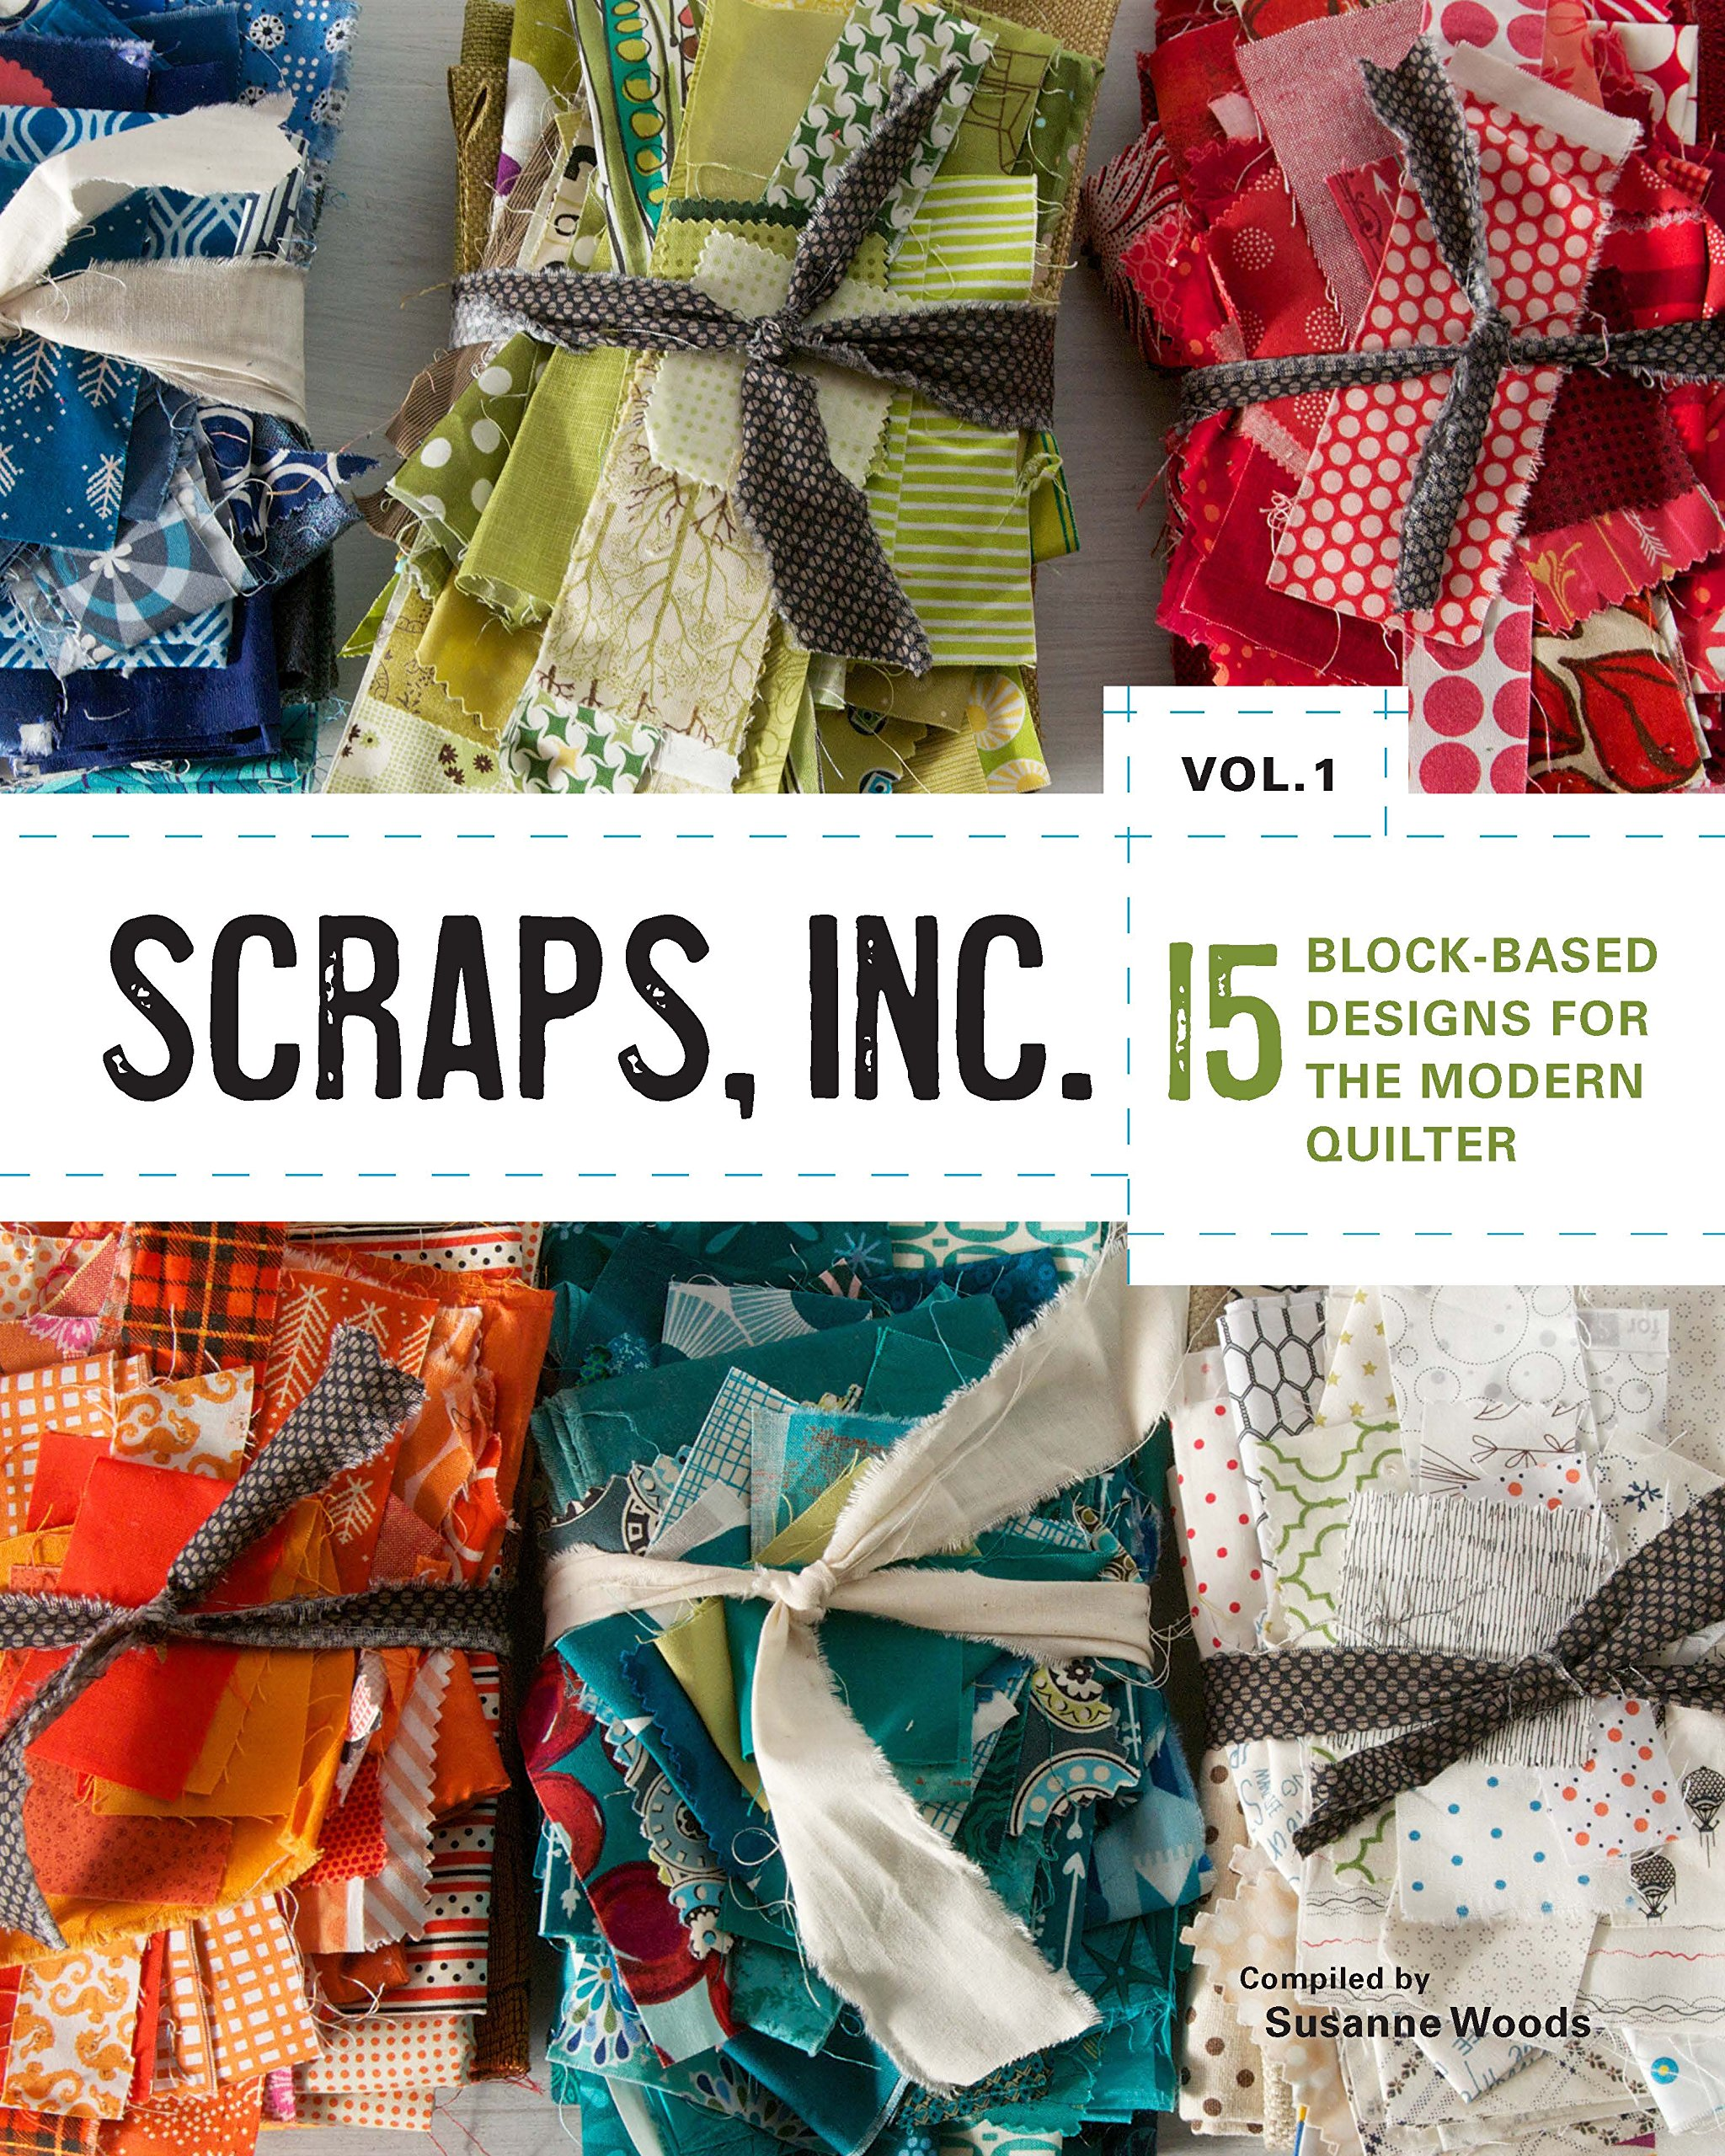 Download Scraps, Inc. Vol. 1: 15 Block-Based Designs for the Modern Quilter PDF